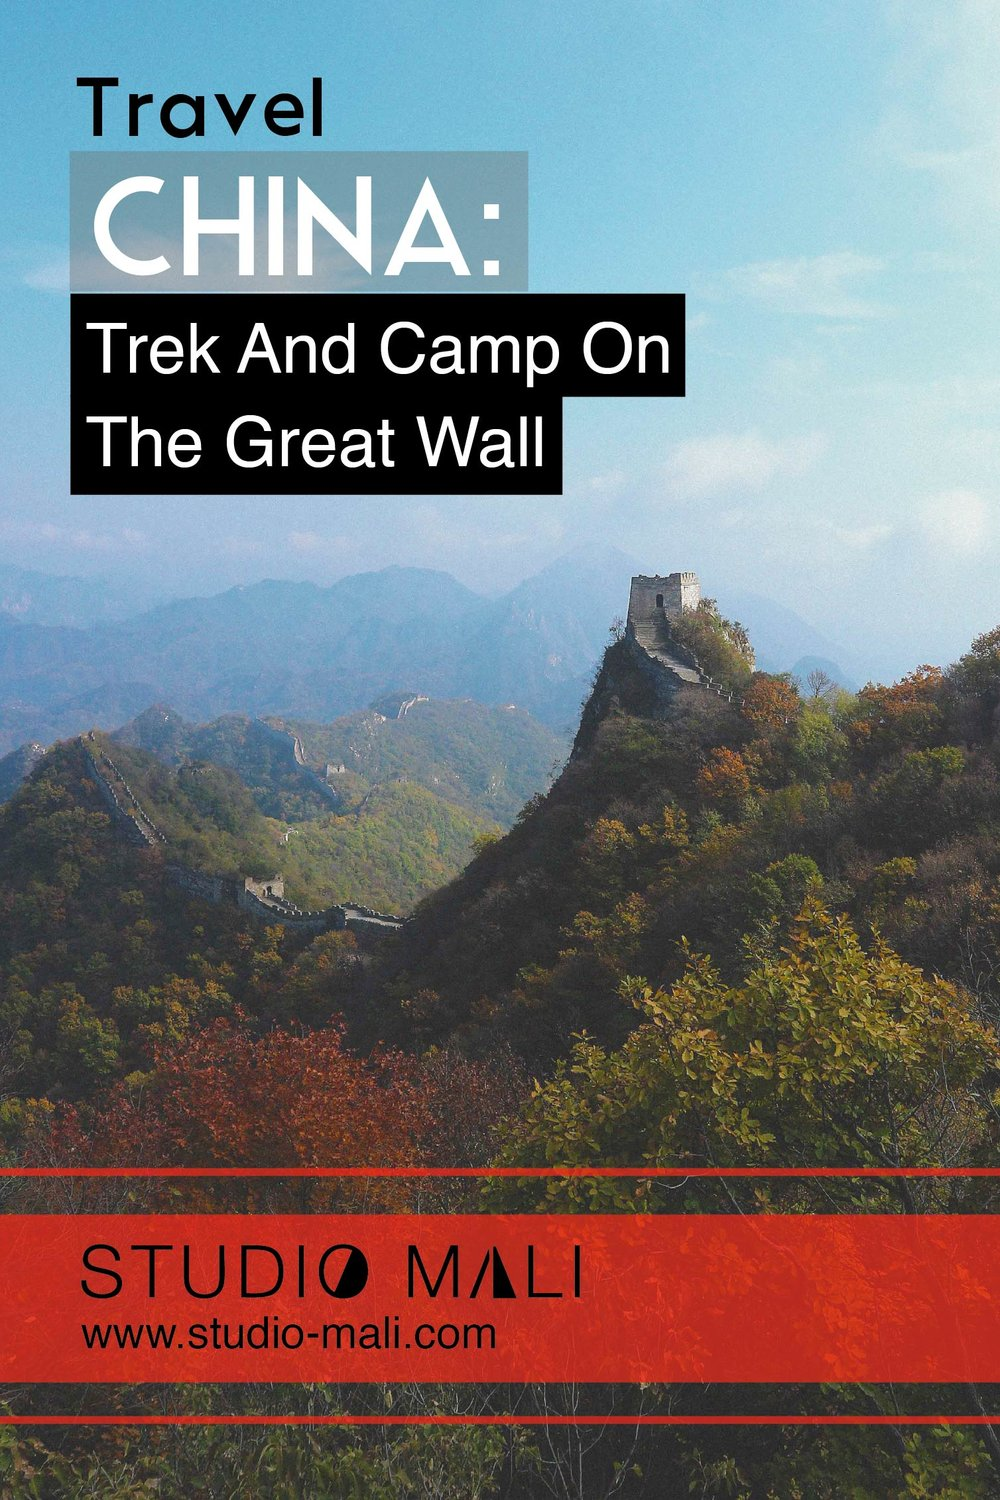 China - Trek And Camp On The Great Wall, by Studio Mali